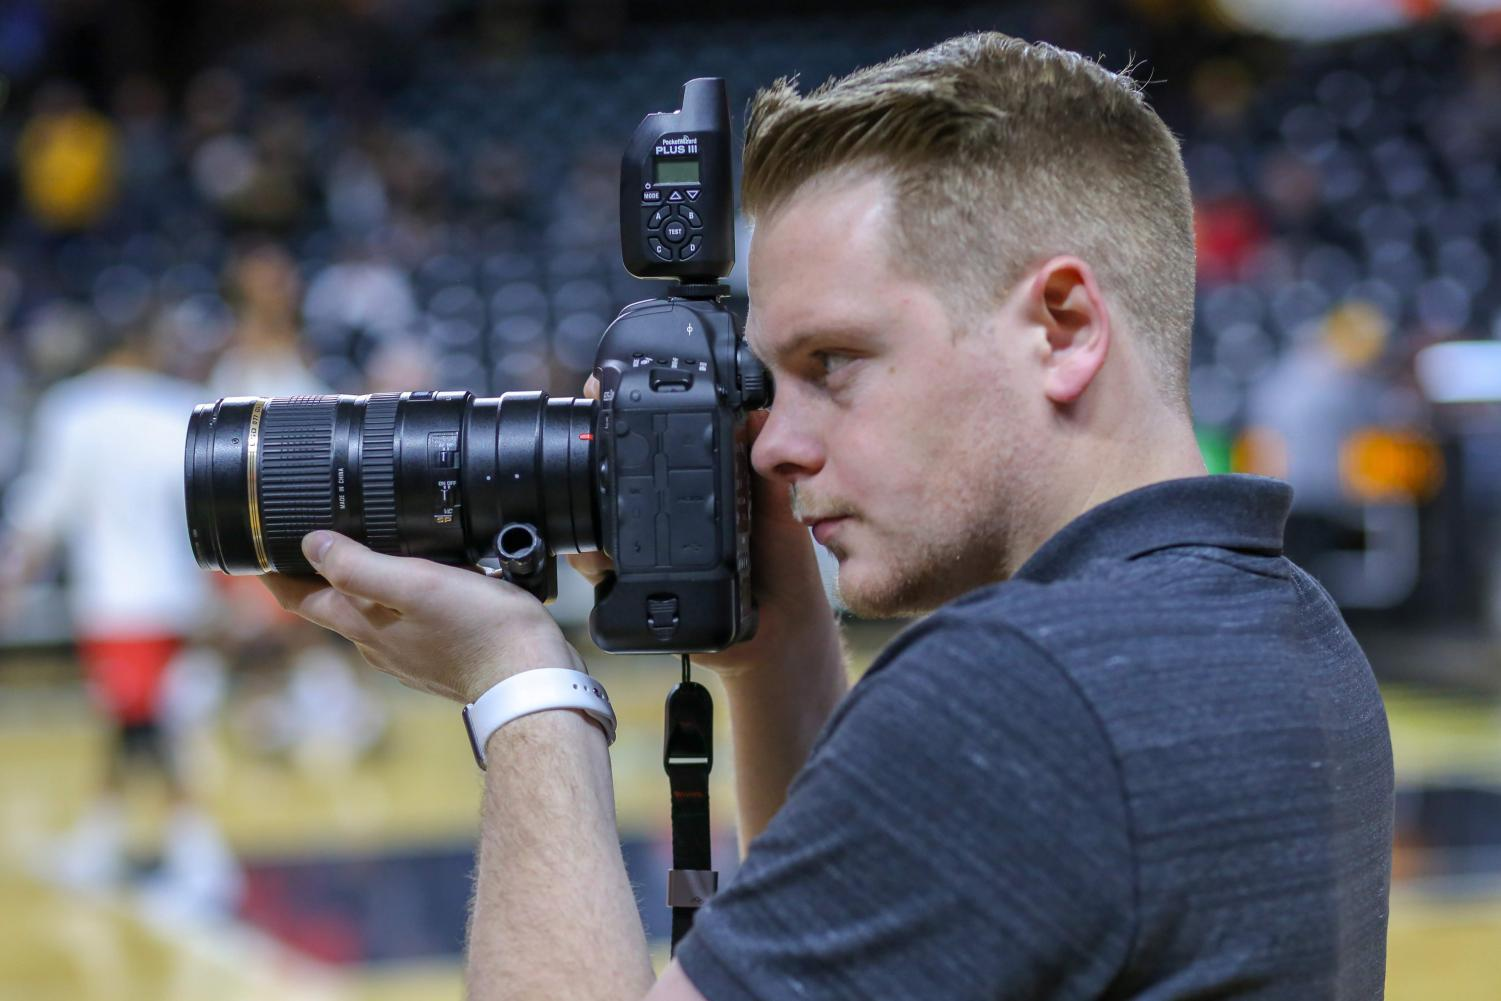 Joseph Barringhaus takes a photo for The Sunflower during warm ups before a Wichita State mens basketball game.